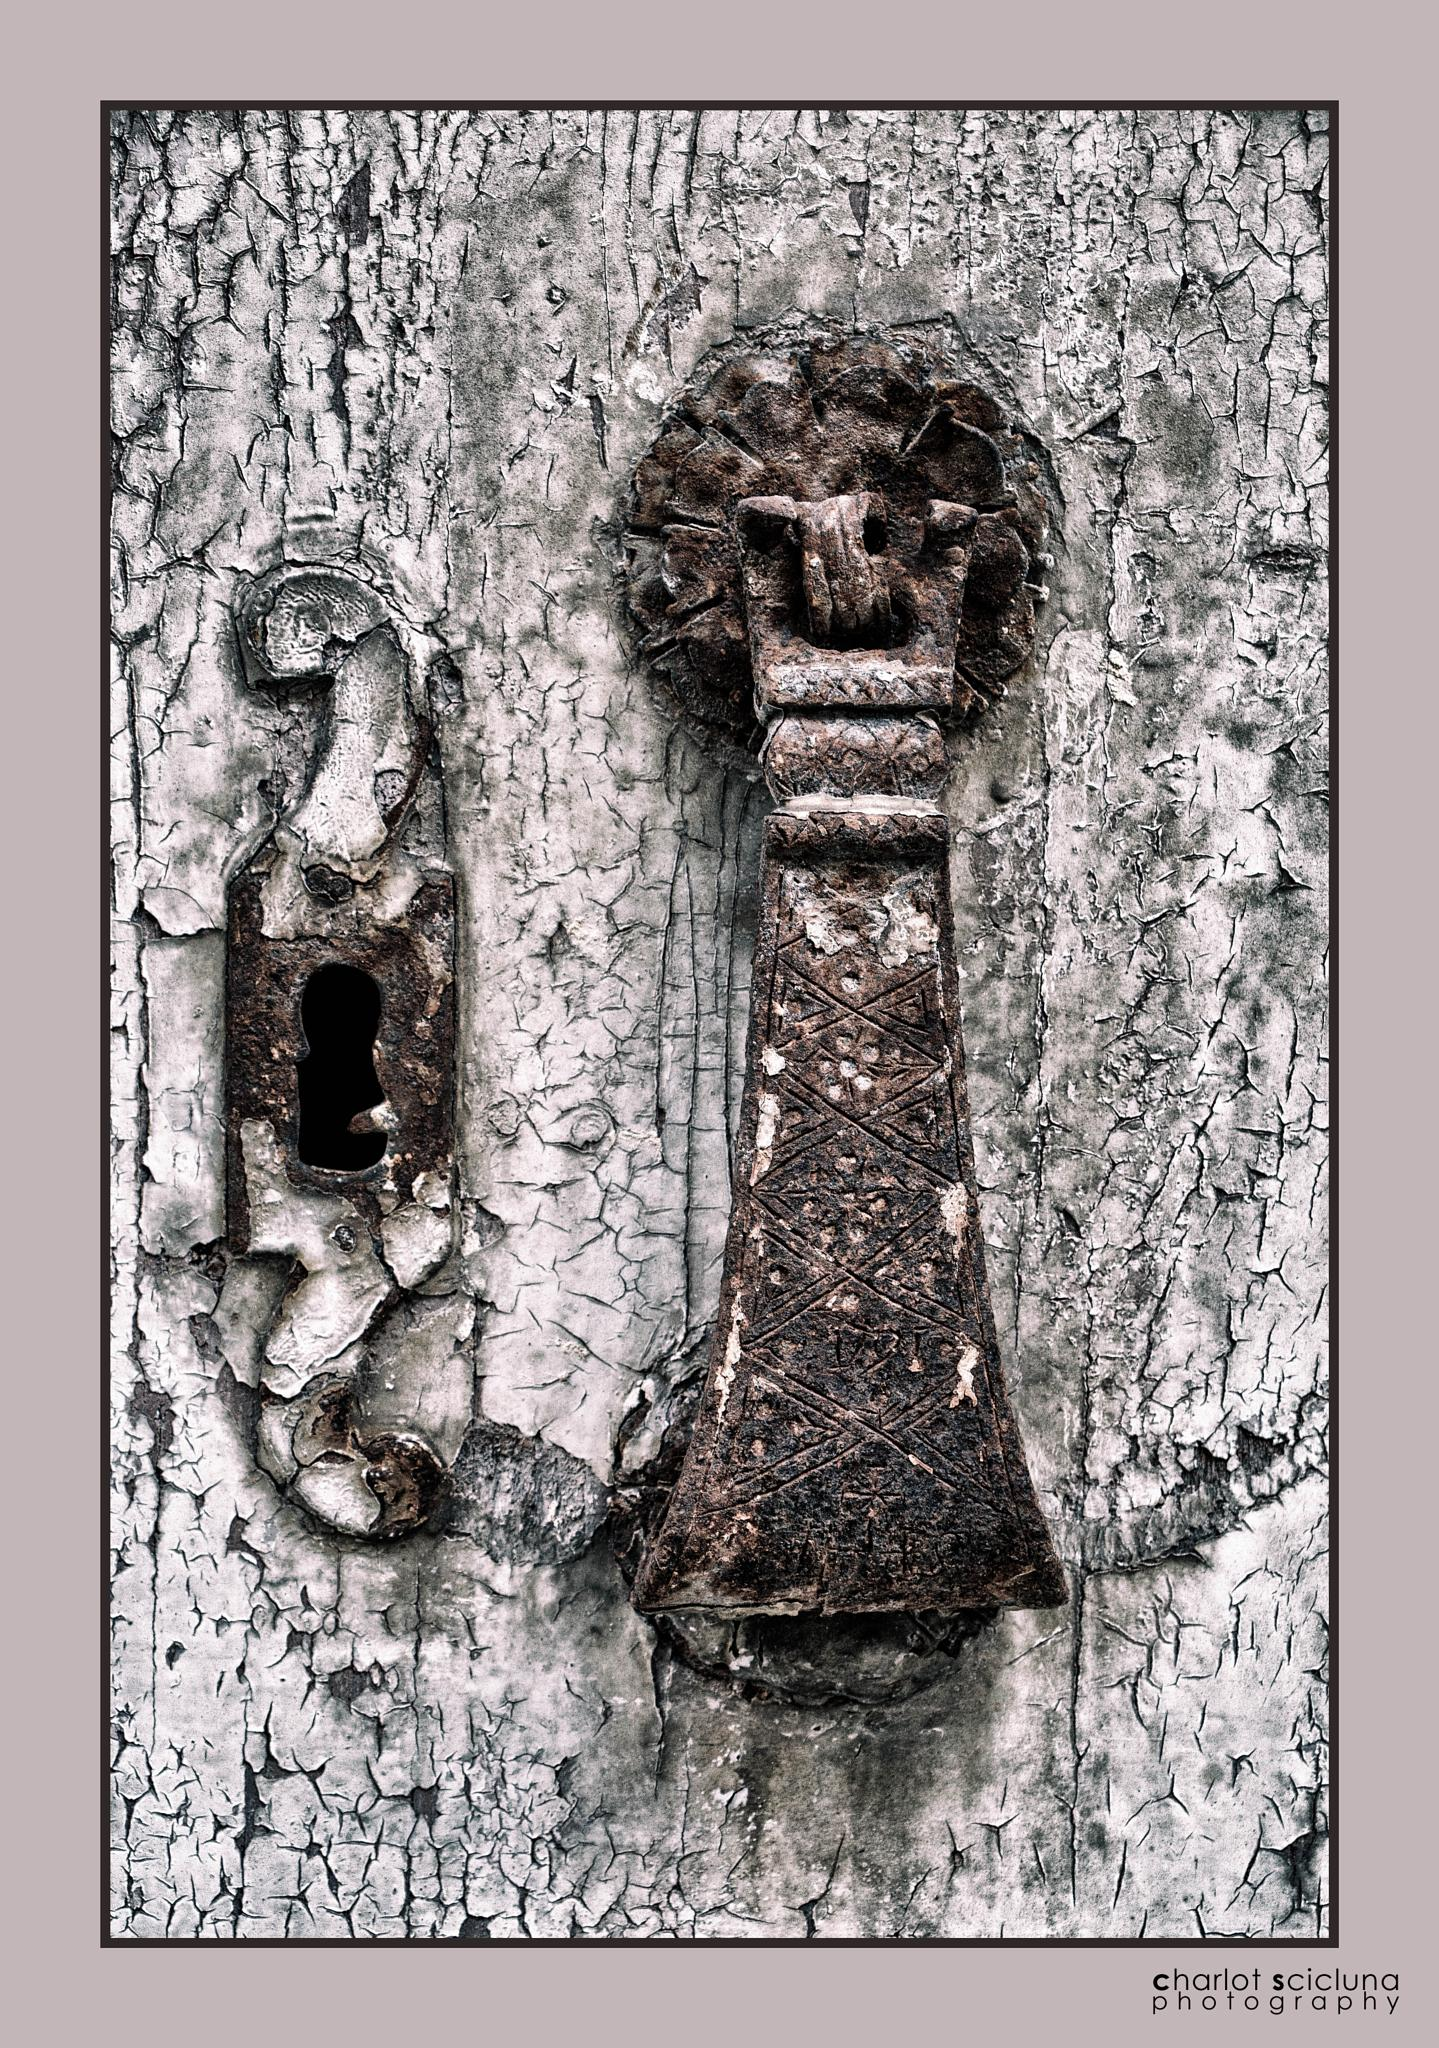 A door knob from 1791 by Charlot Scicluna